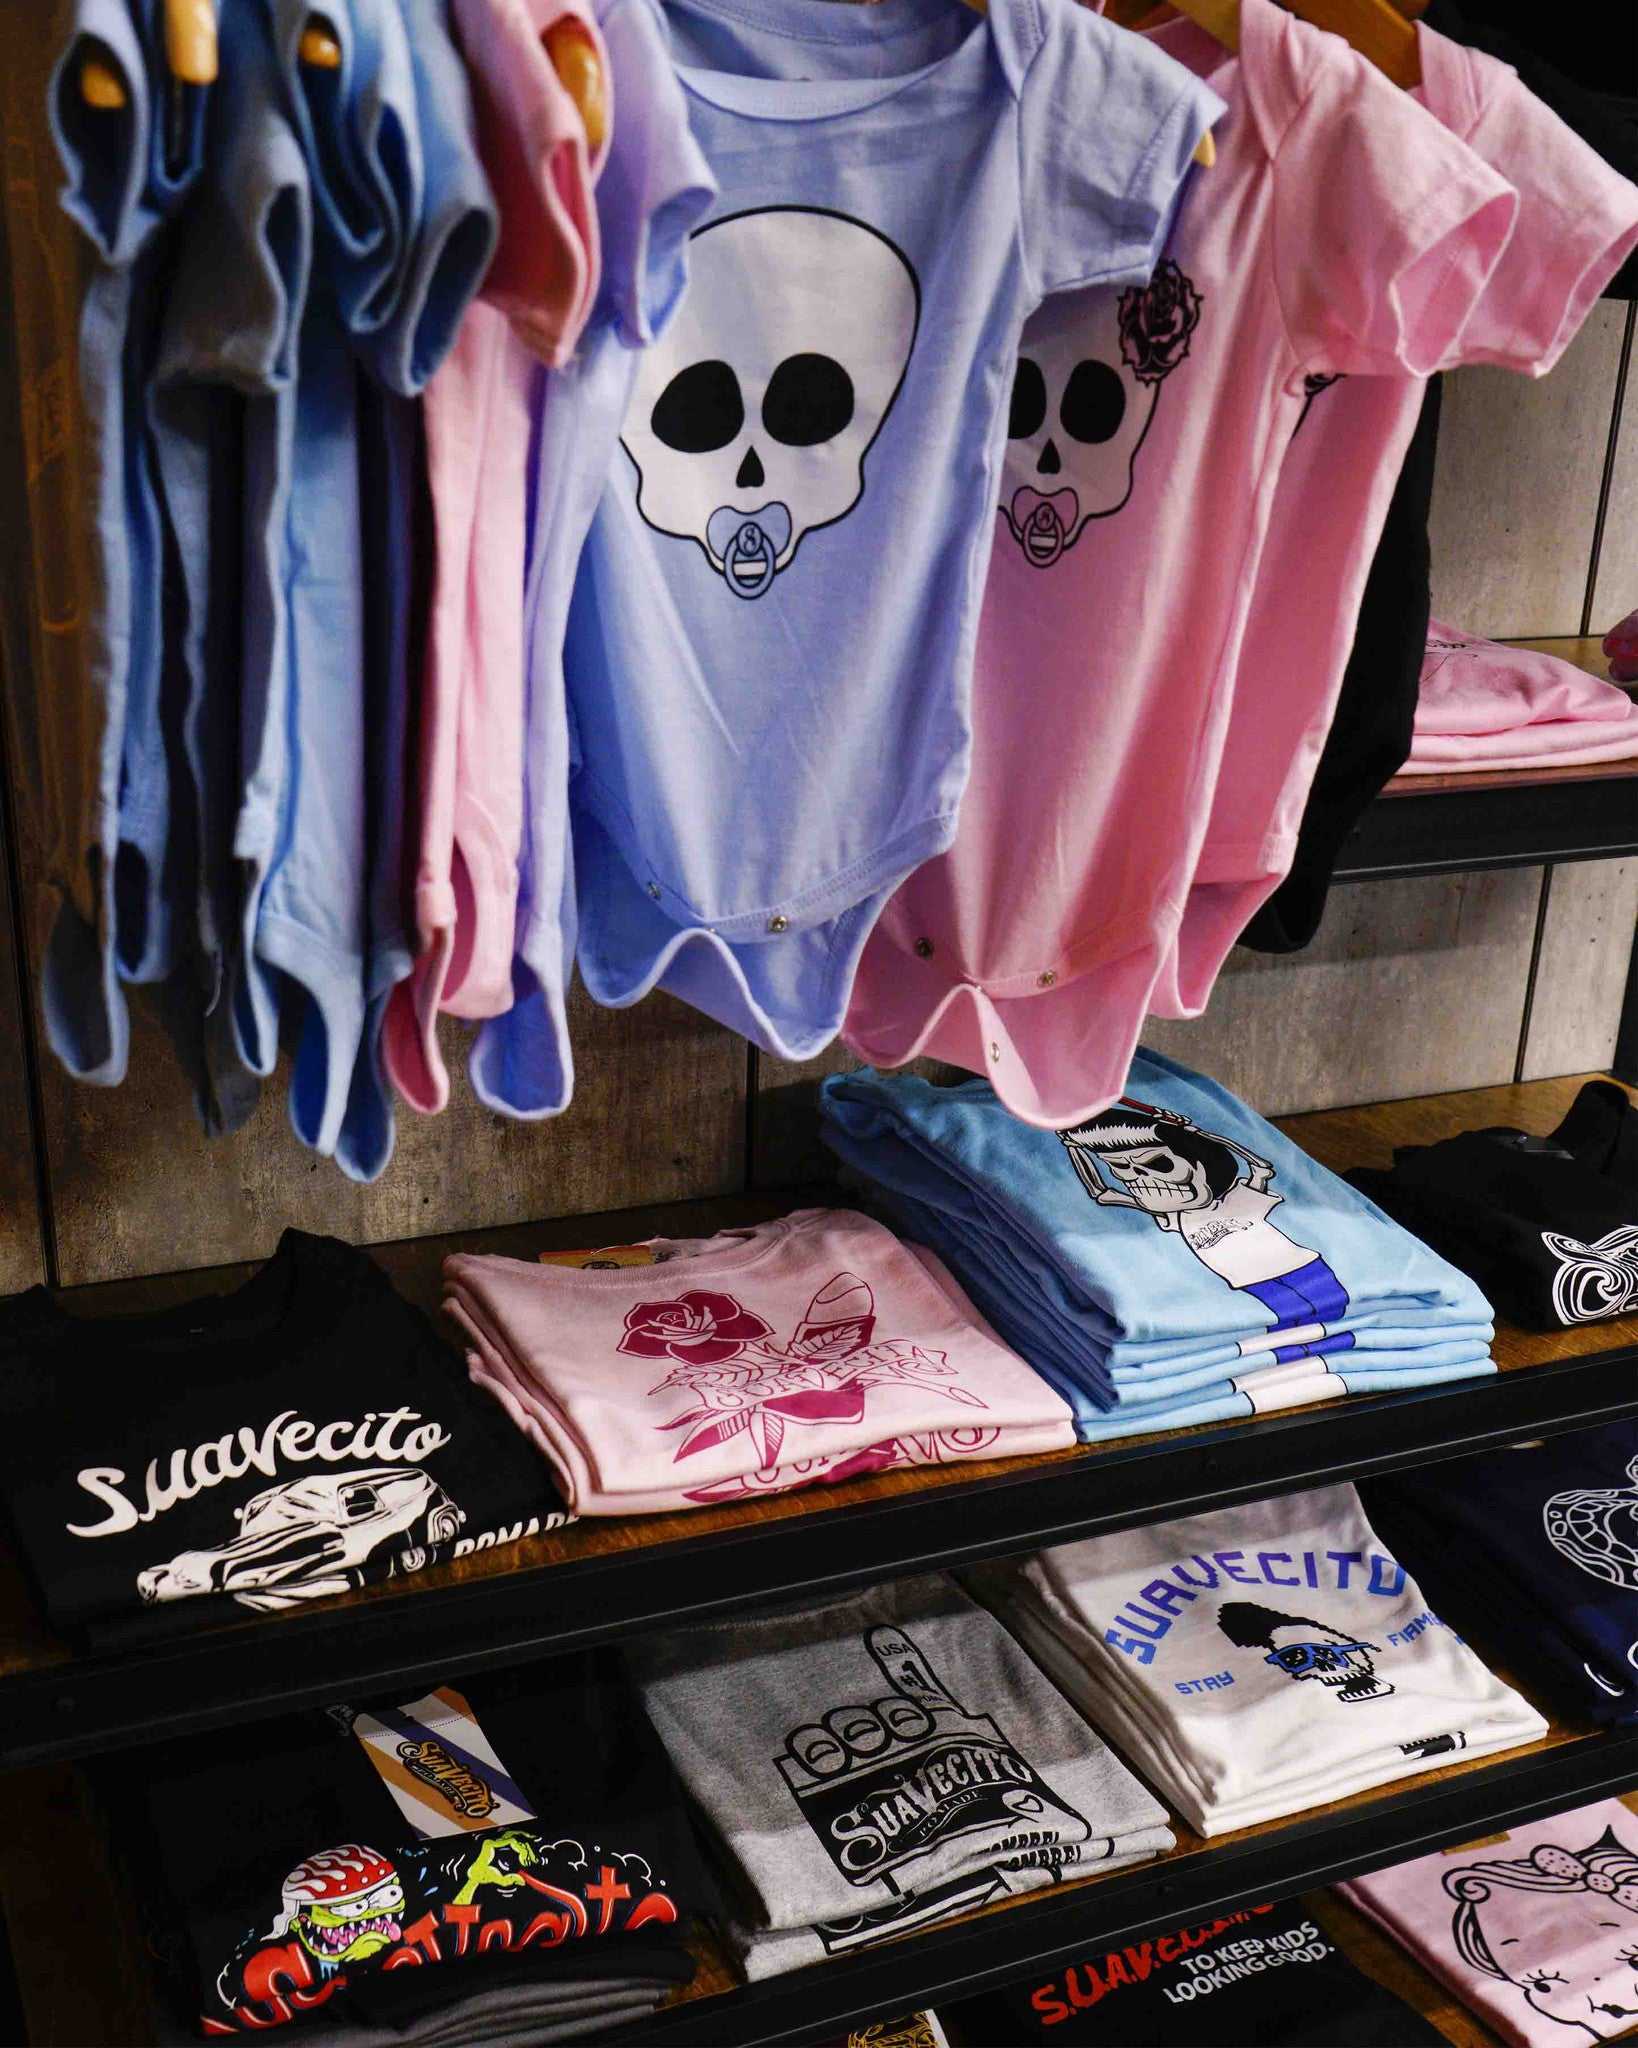 Kids Apparel - Store Front - Suavecito and Suavecita